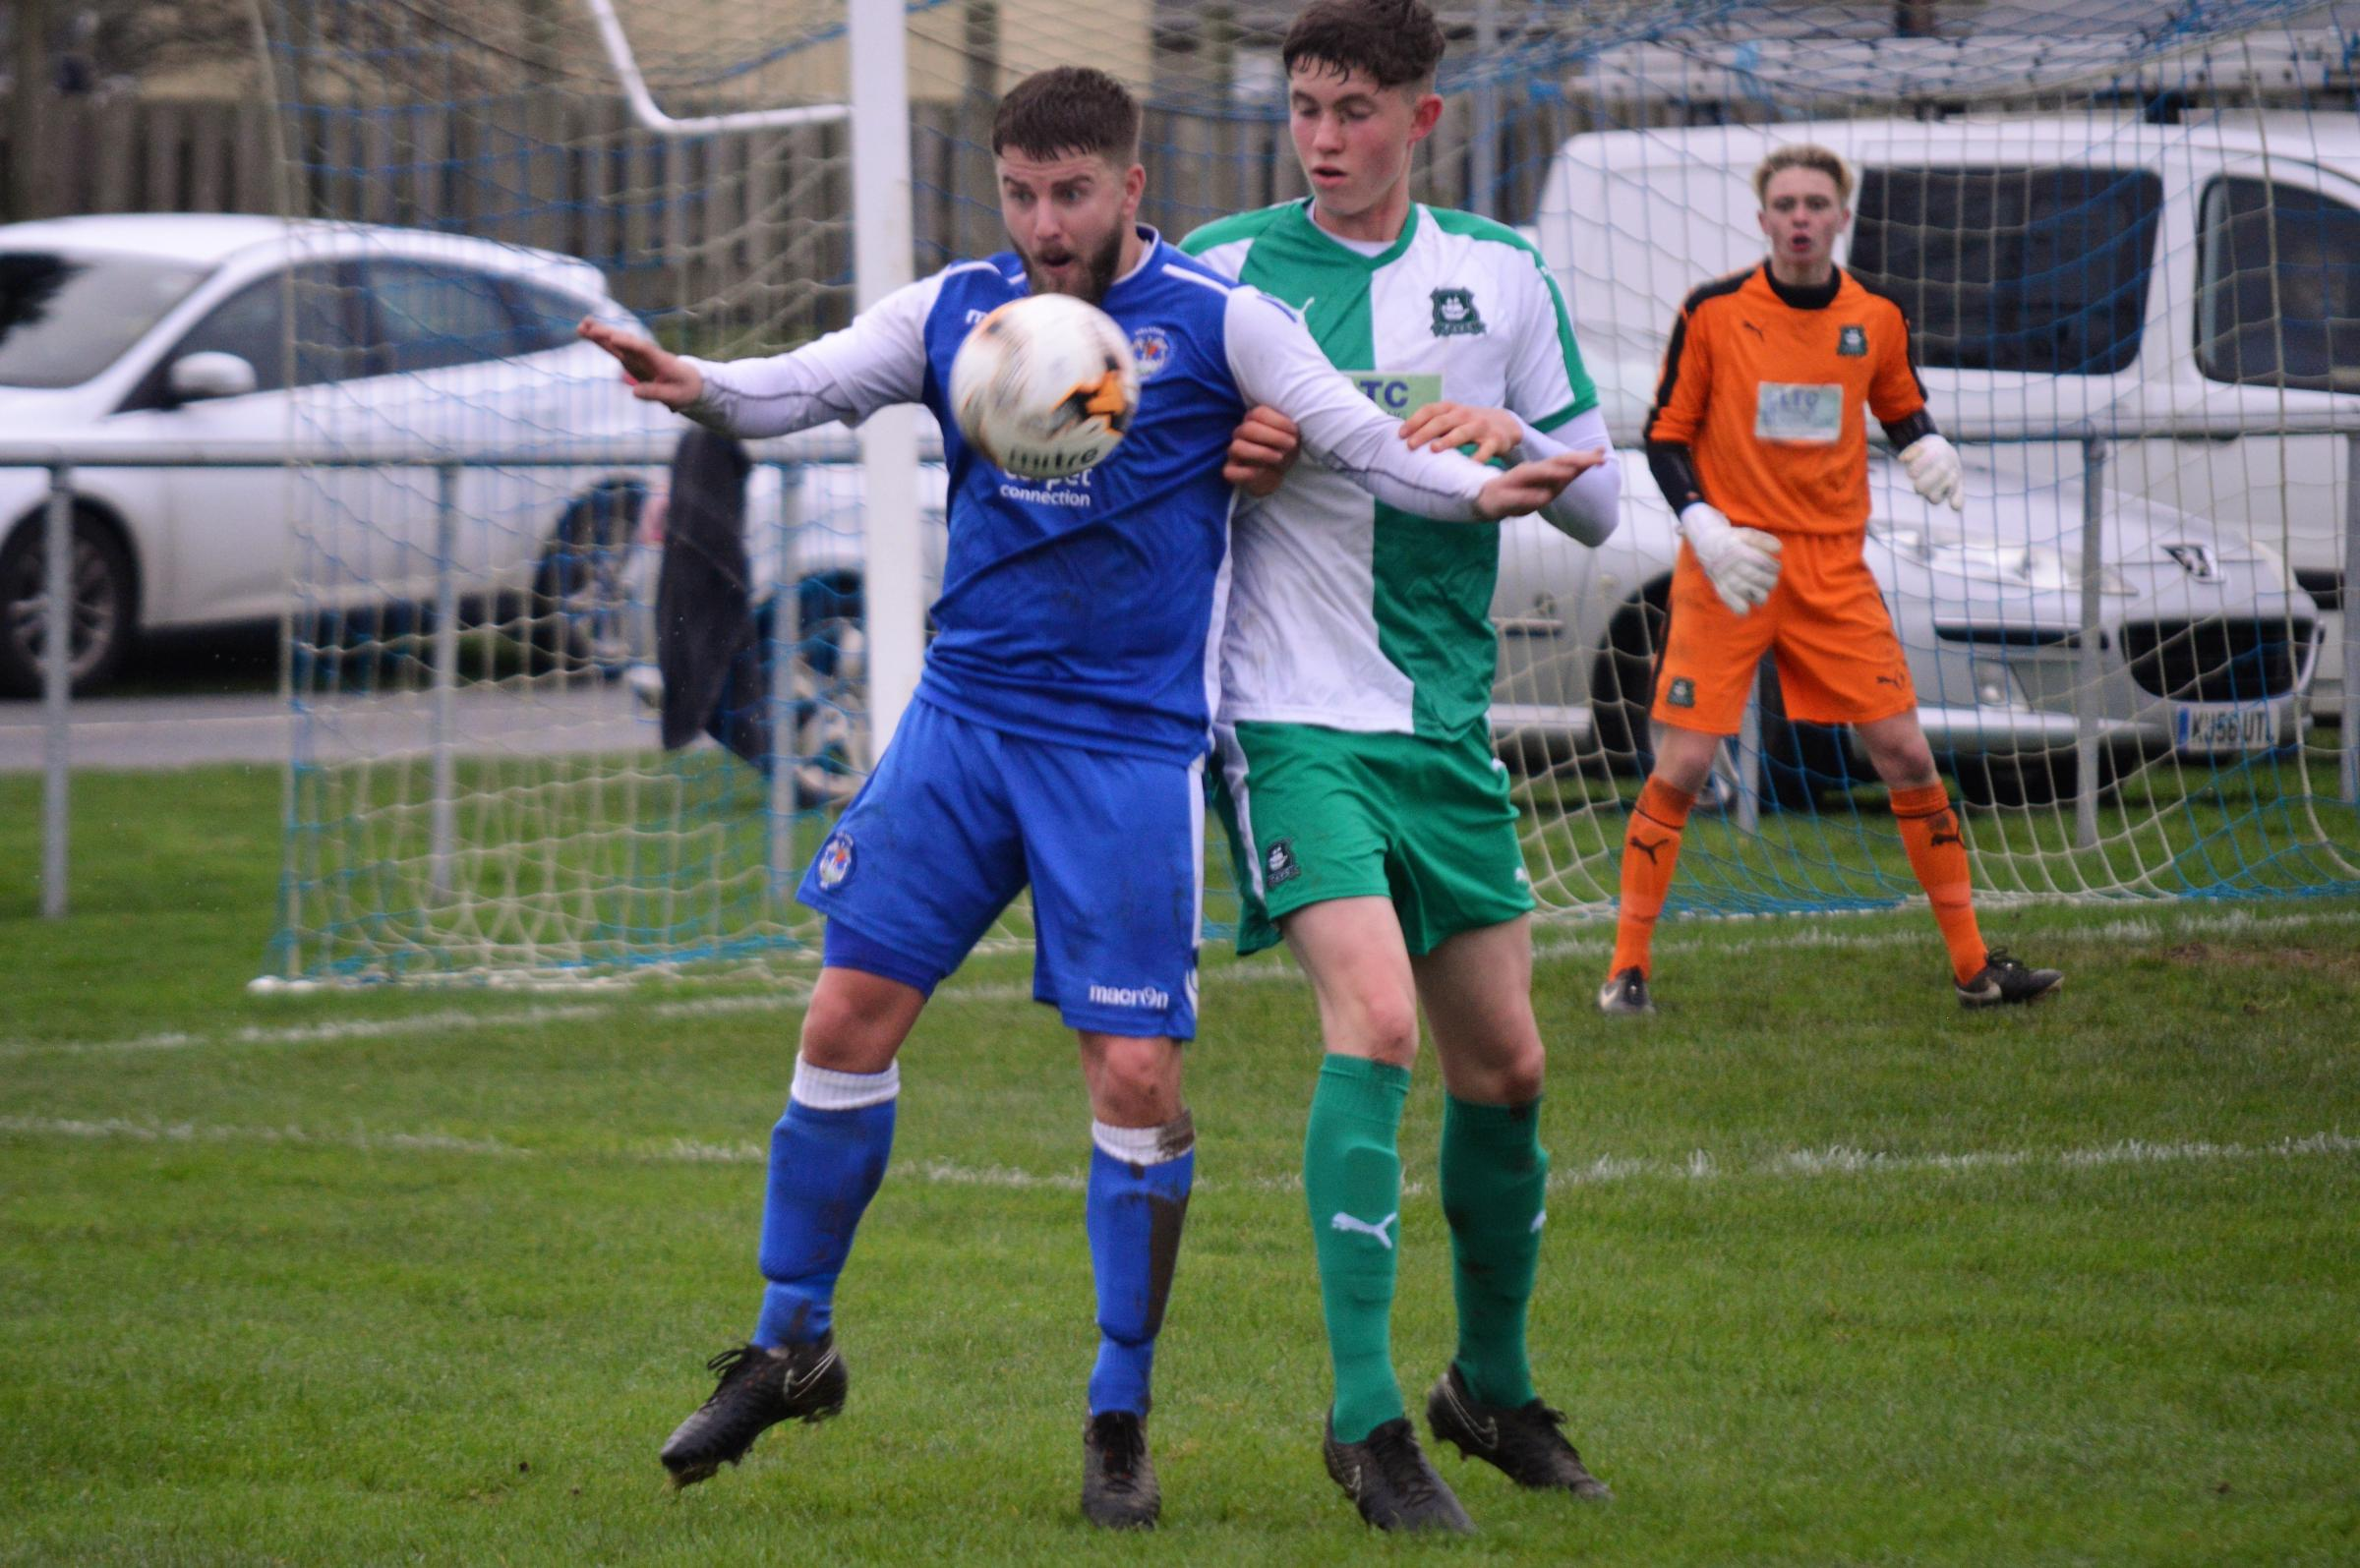 Helston Athletic ended 2018 with a 3-1 defeat at home to Plymouth Argyle on Saturday